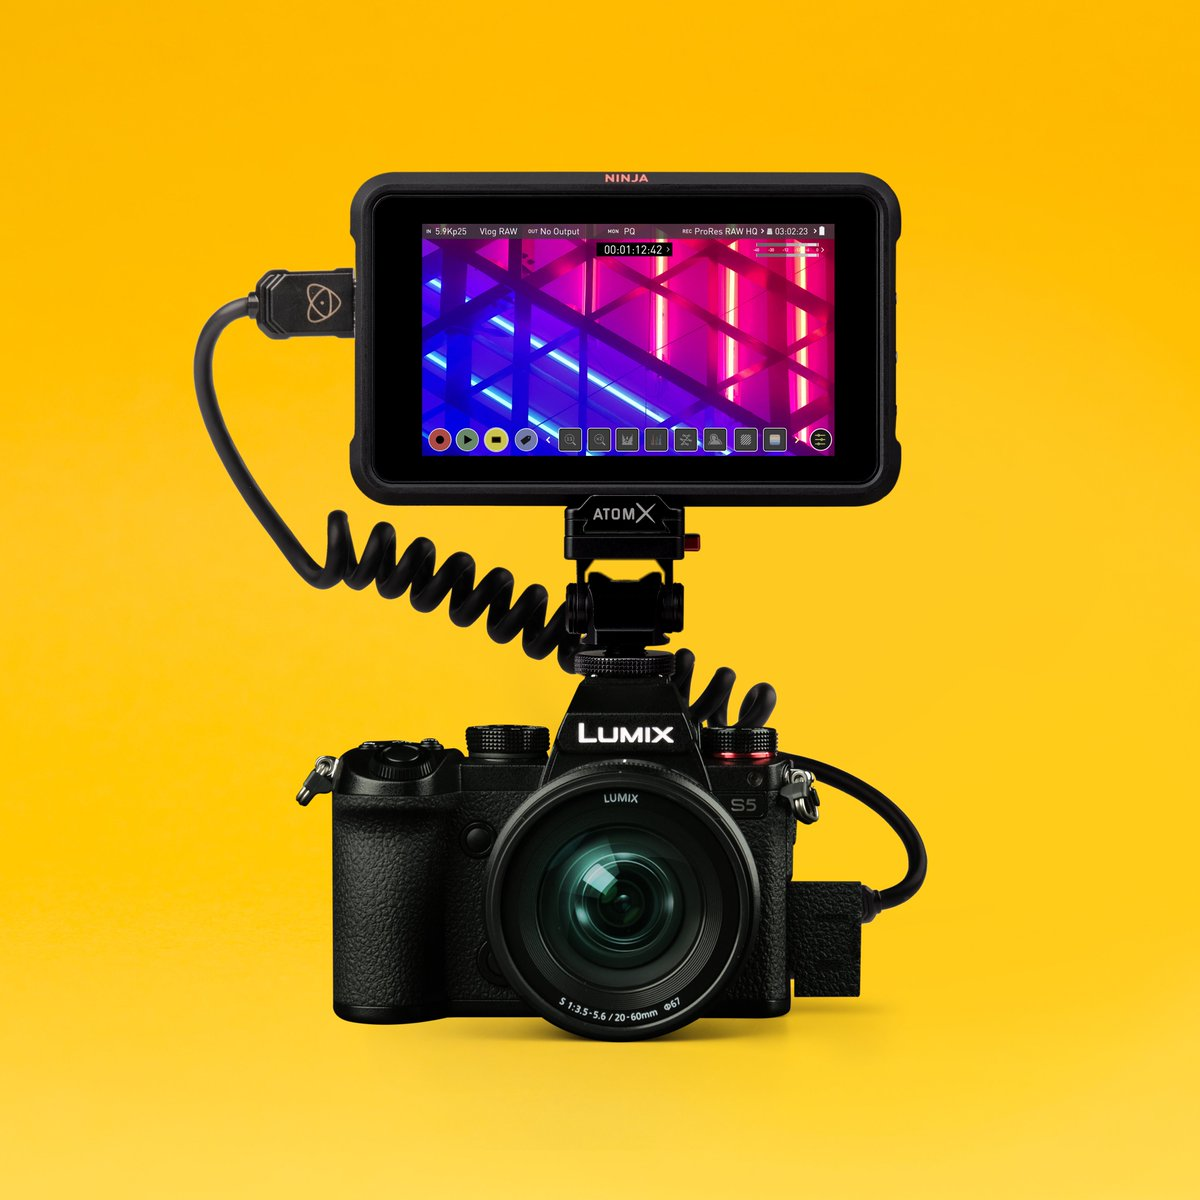 RT @AtomosGlobal: Announcement ?: Ninja V AtomOS 10.55 free firmware now supports up to 5.9K full frame ProRes RAW recording from the new P…